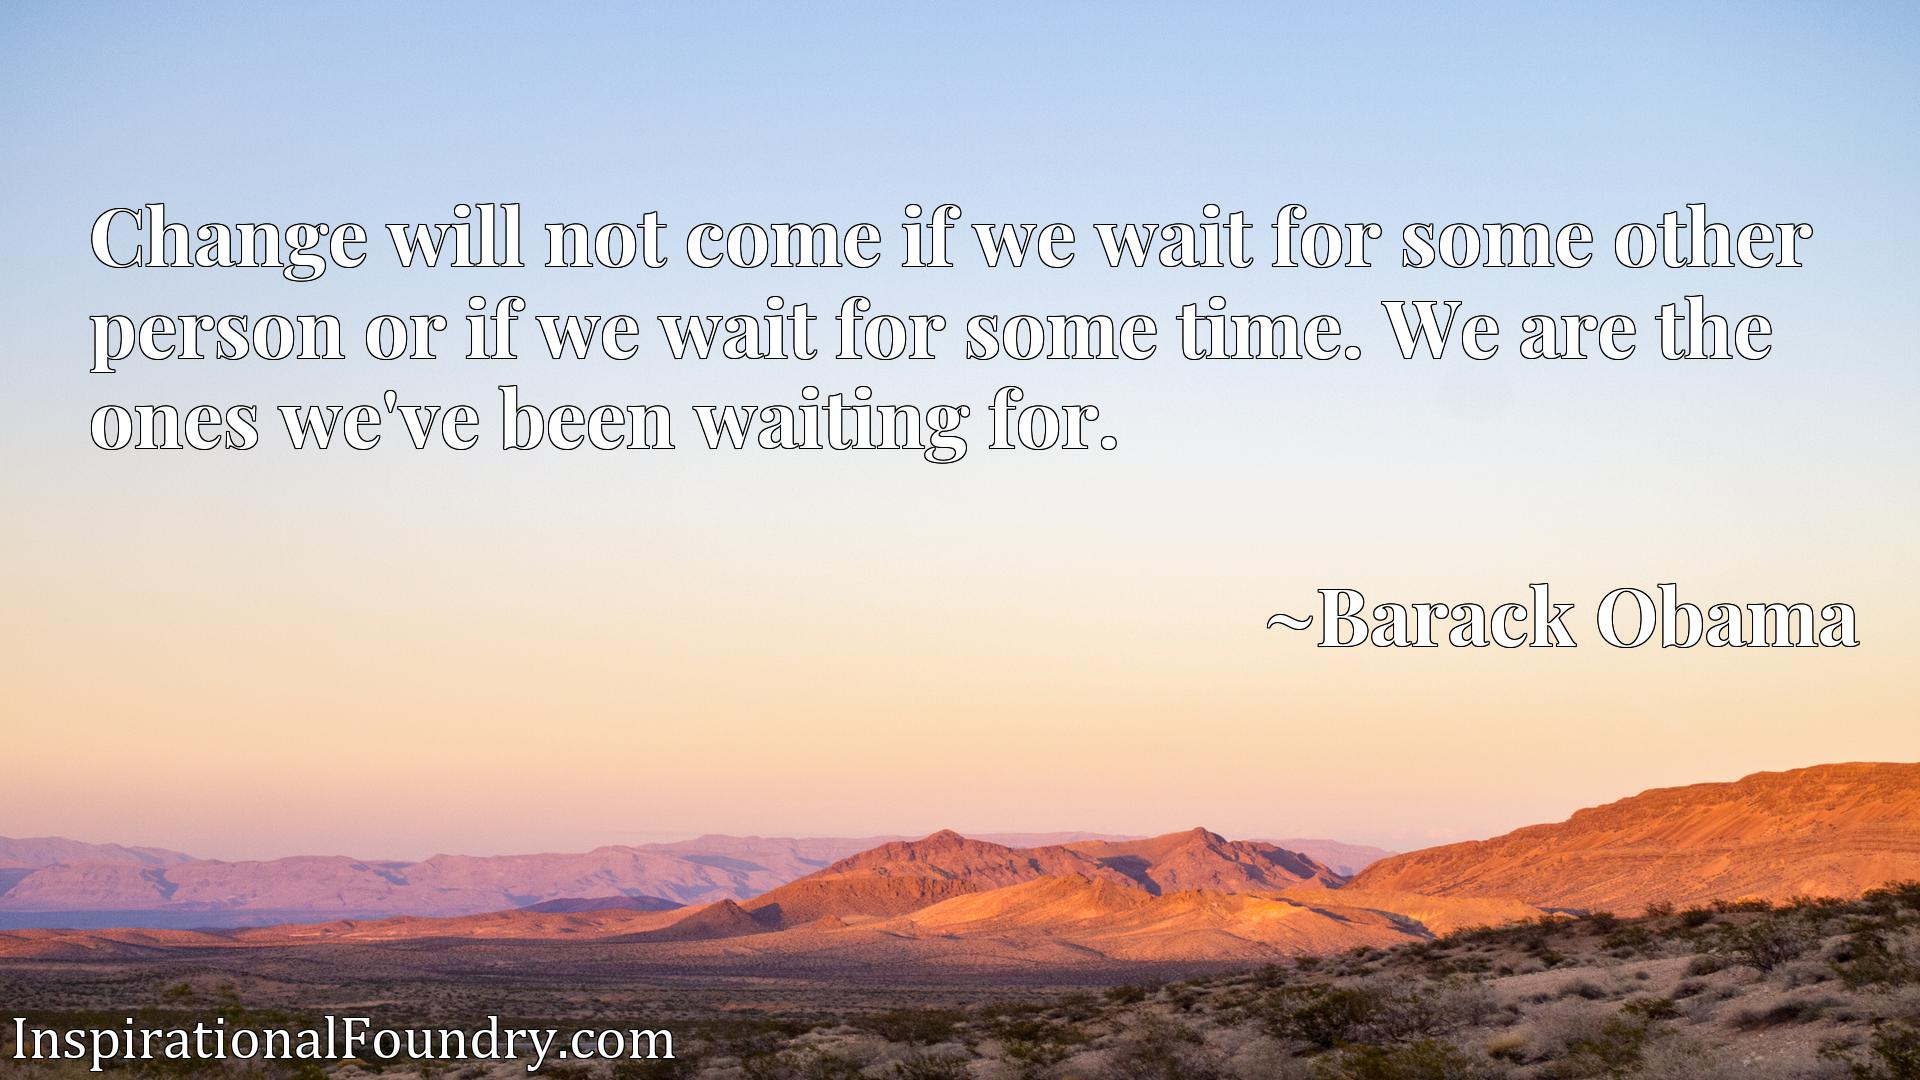 Change will not come if we wait for some other person or if we wait for some time. We are the ones we've been waiting for.